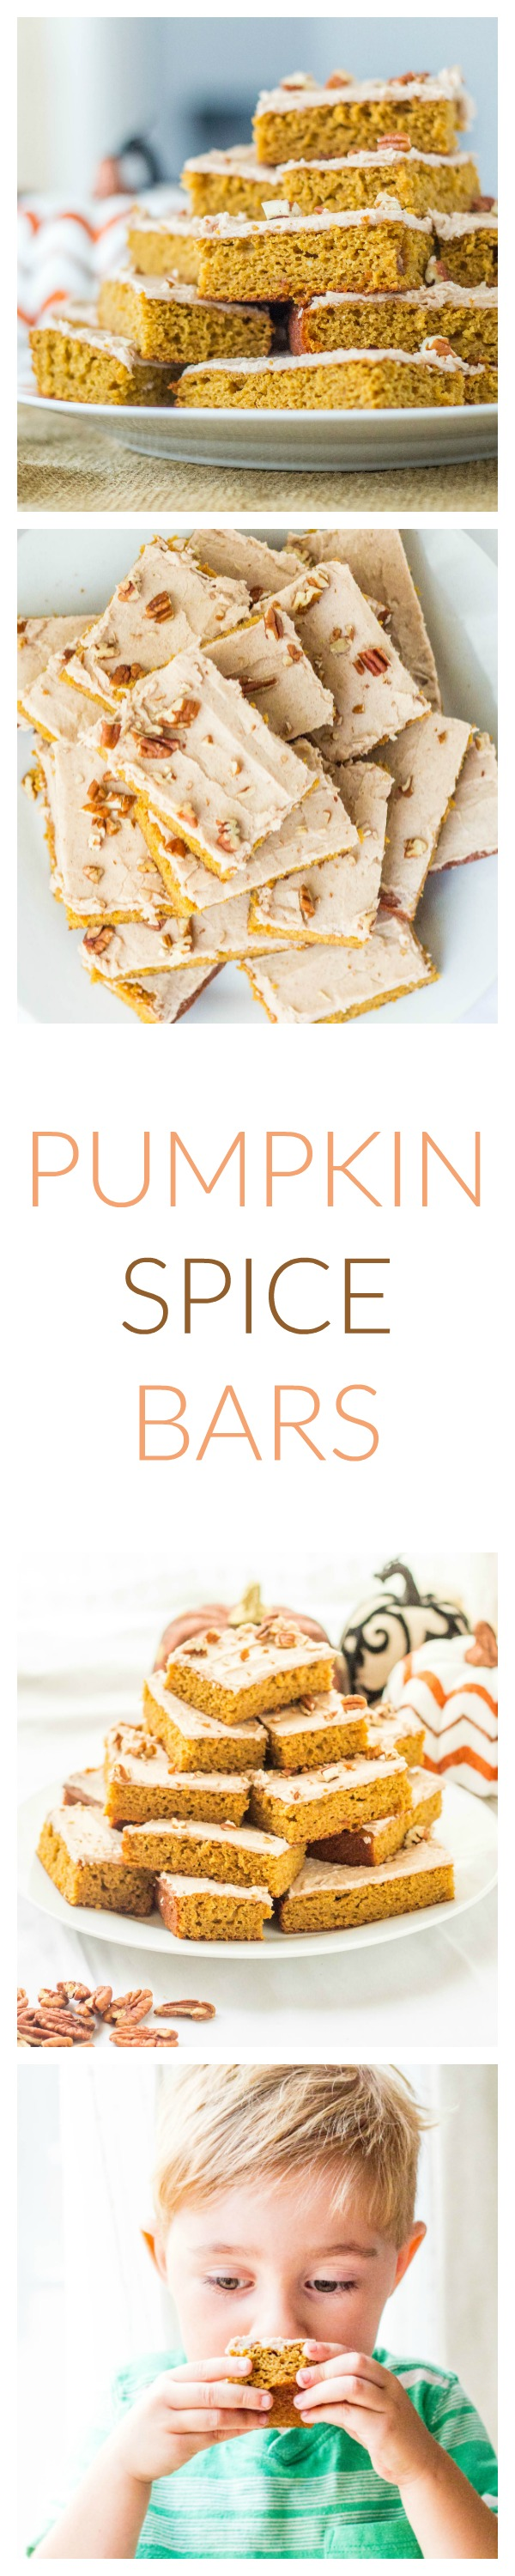 Pumpkin Spice Bars Long PIN